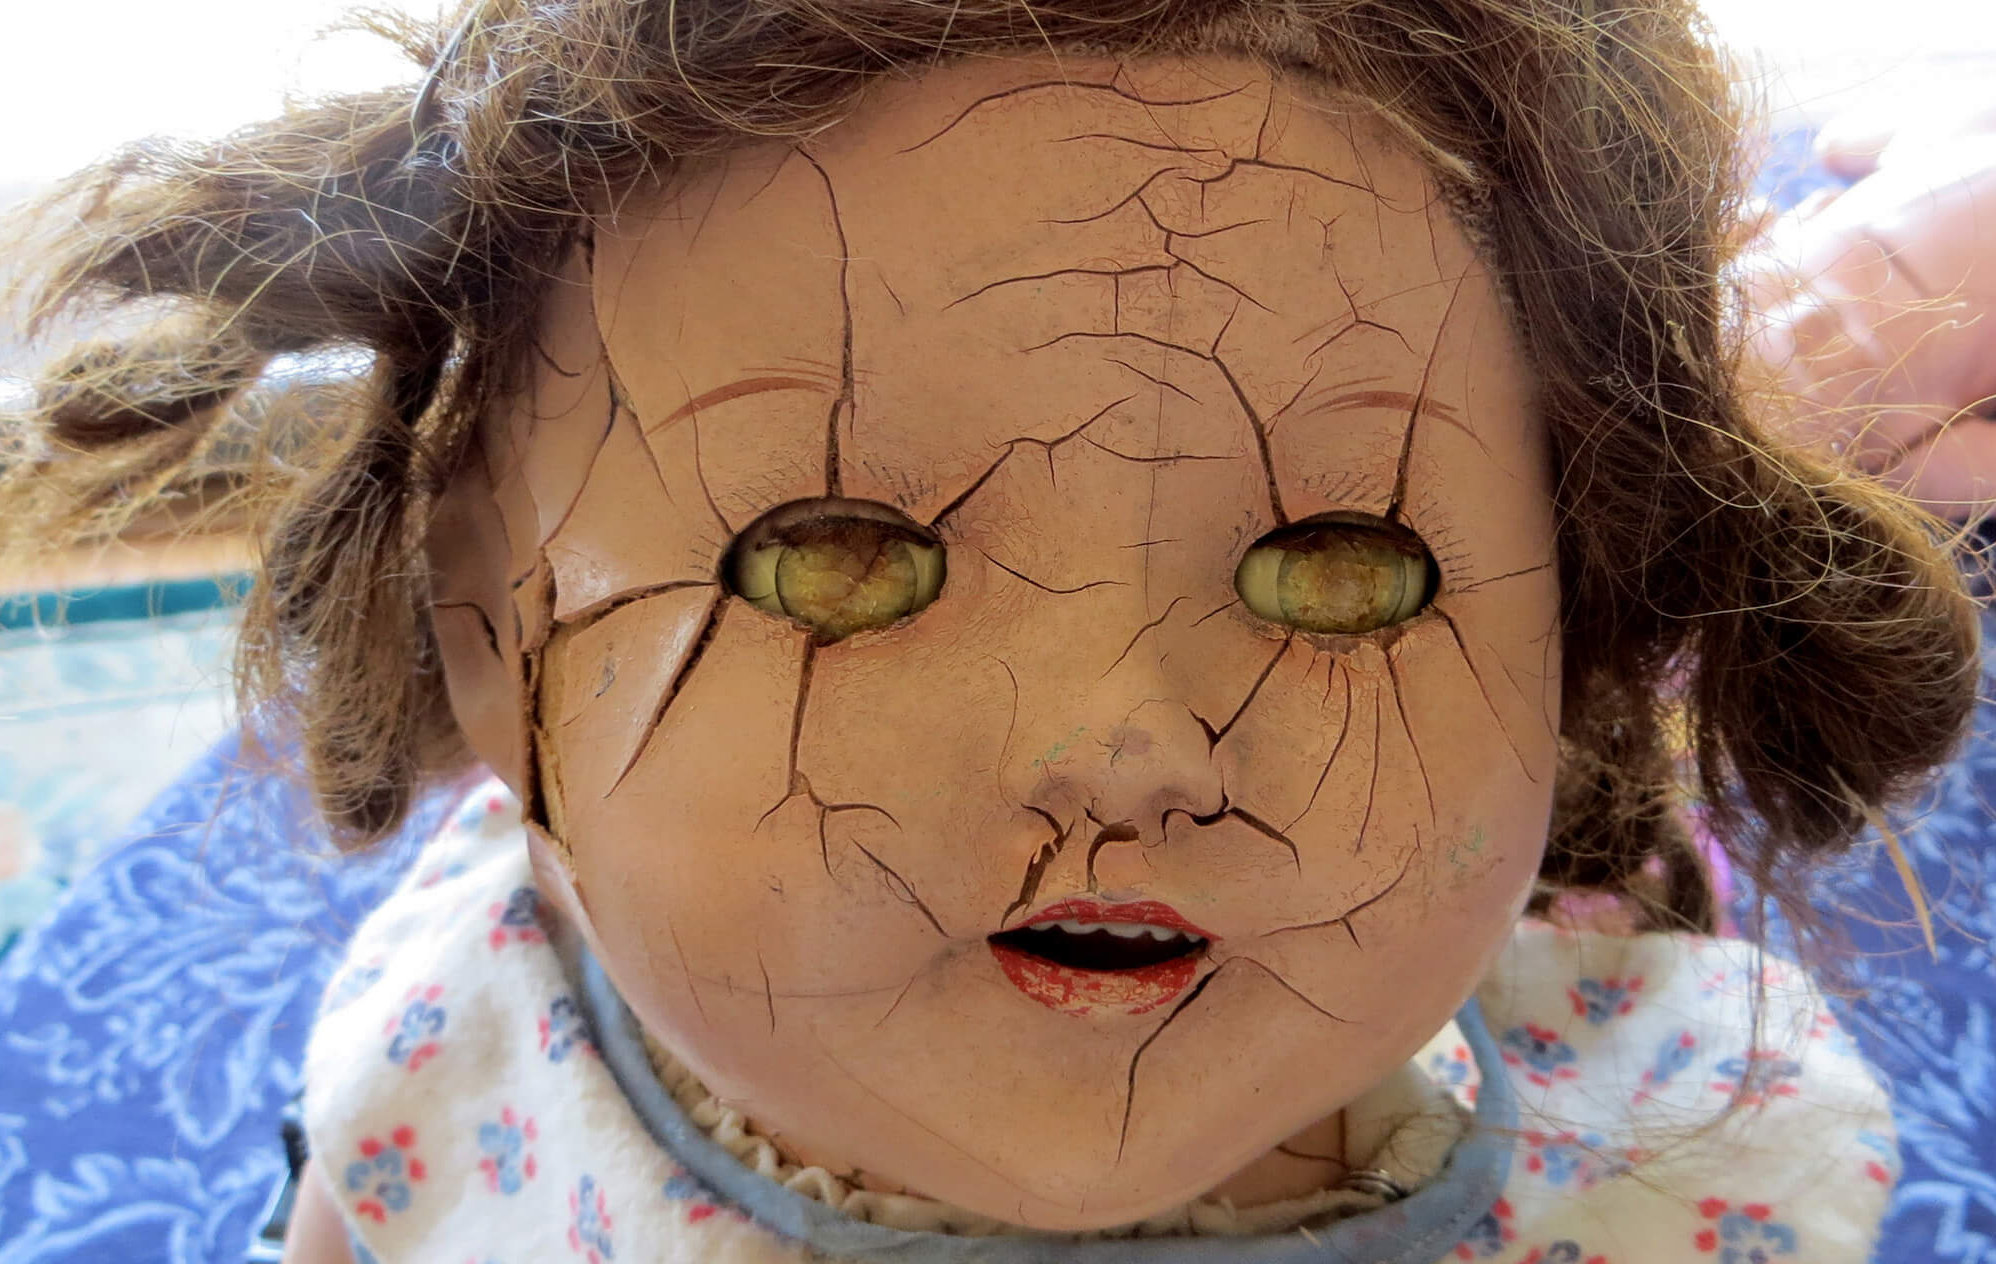 photo of creepy doll